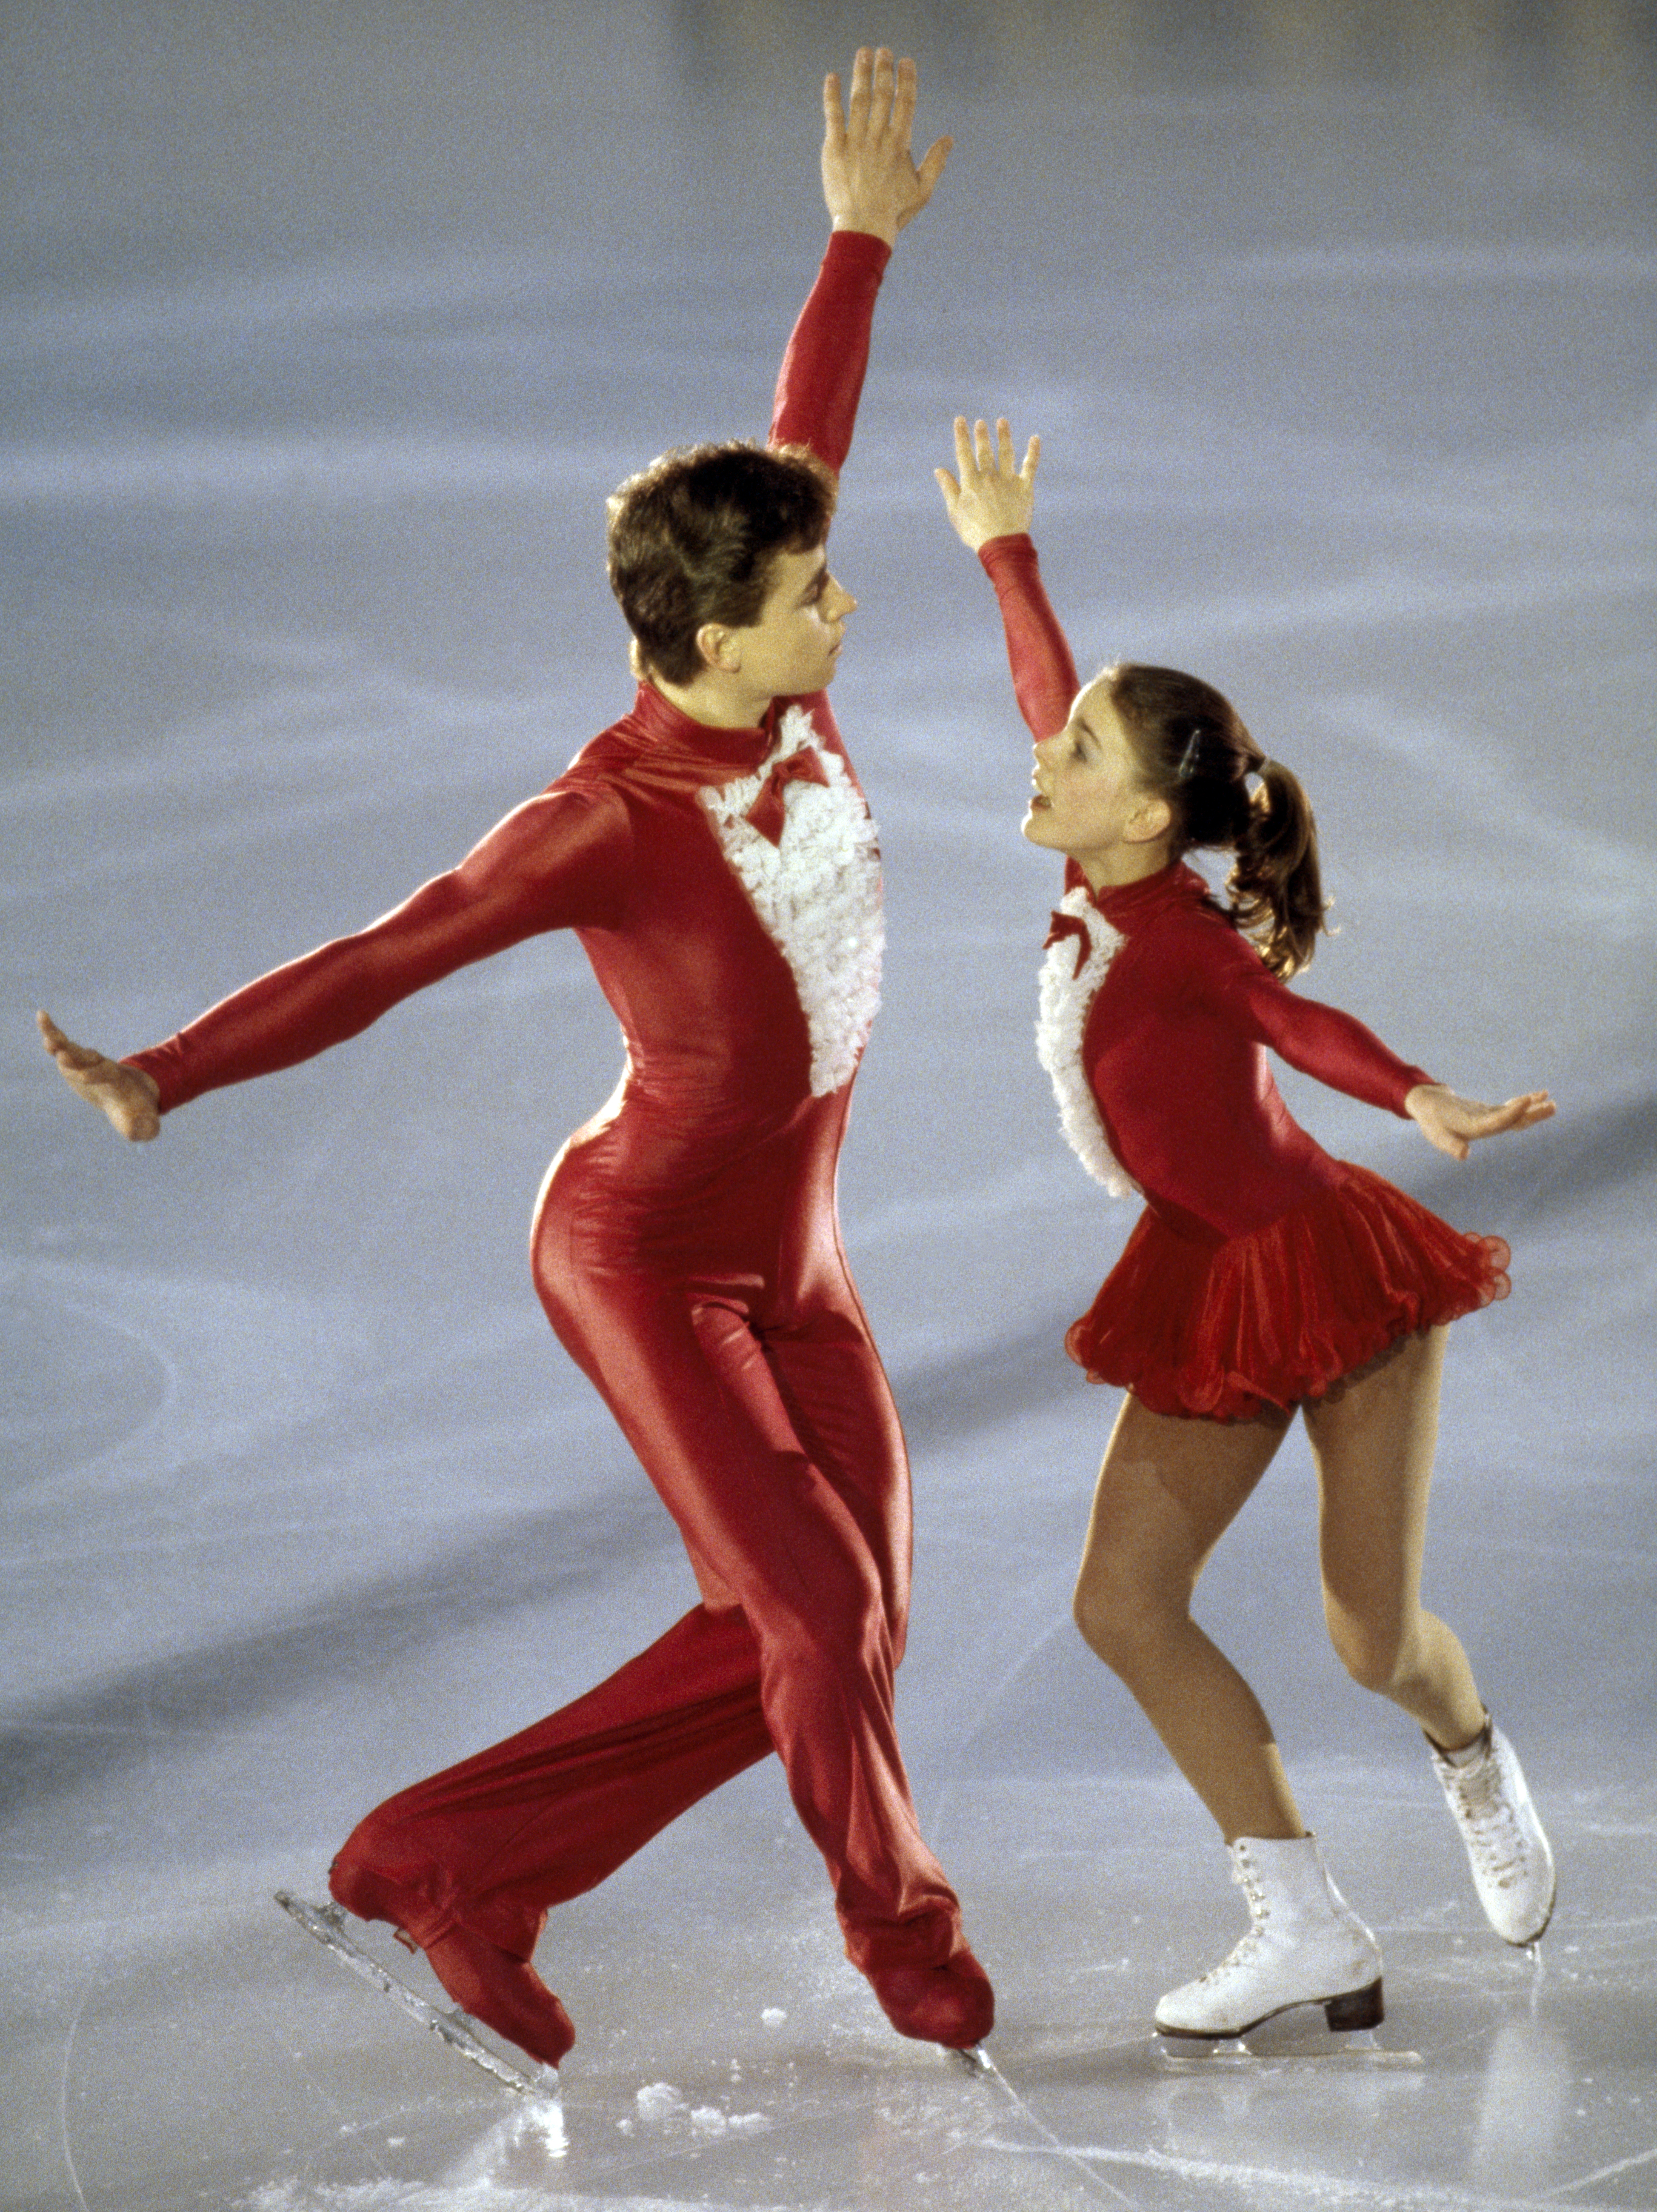 Sergei Grinkov and Ekaterina Gordeeva of Russia performing in a pairs skating event during the European Figure Skating Championships in Copenhagen, Denmark, circa 1986. (Photo by Eileen Langsley/Popperfoto/Getty Images)